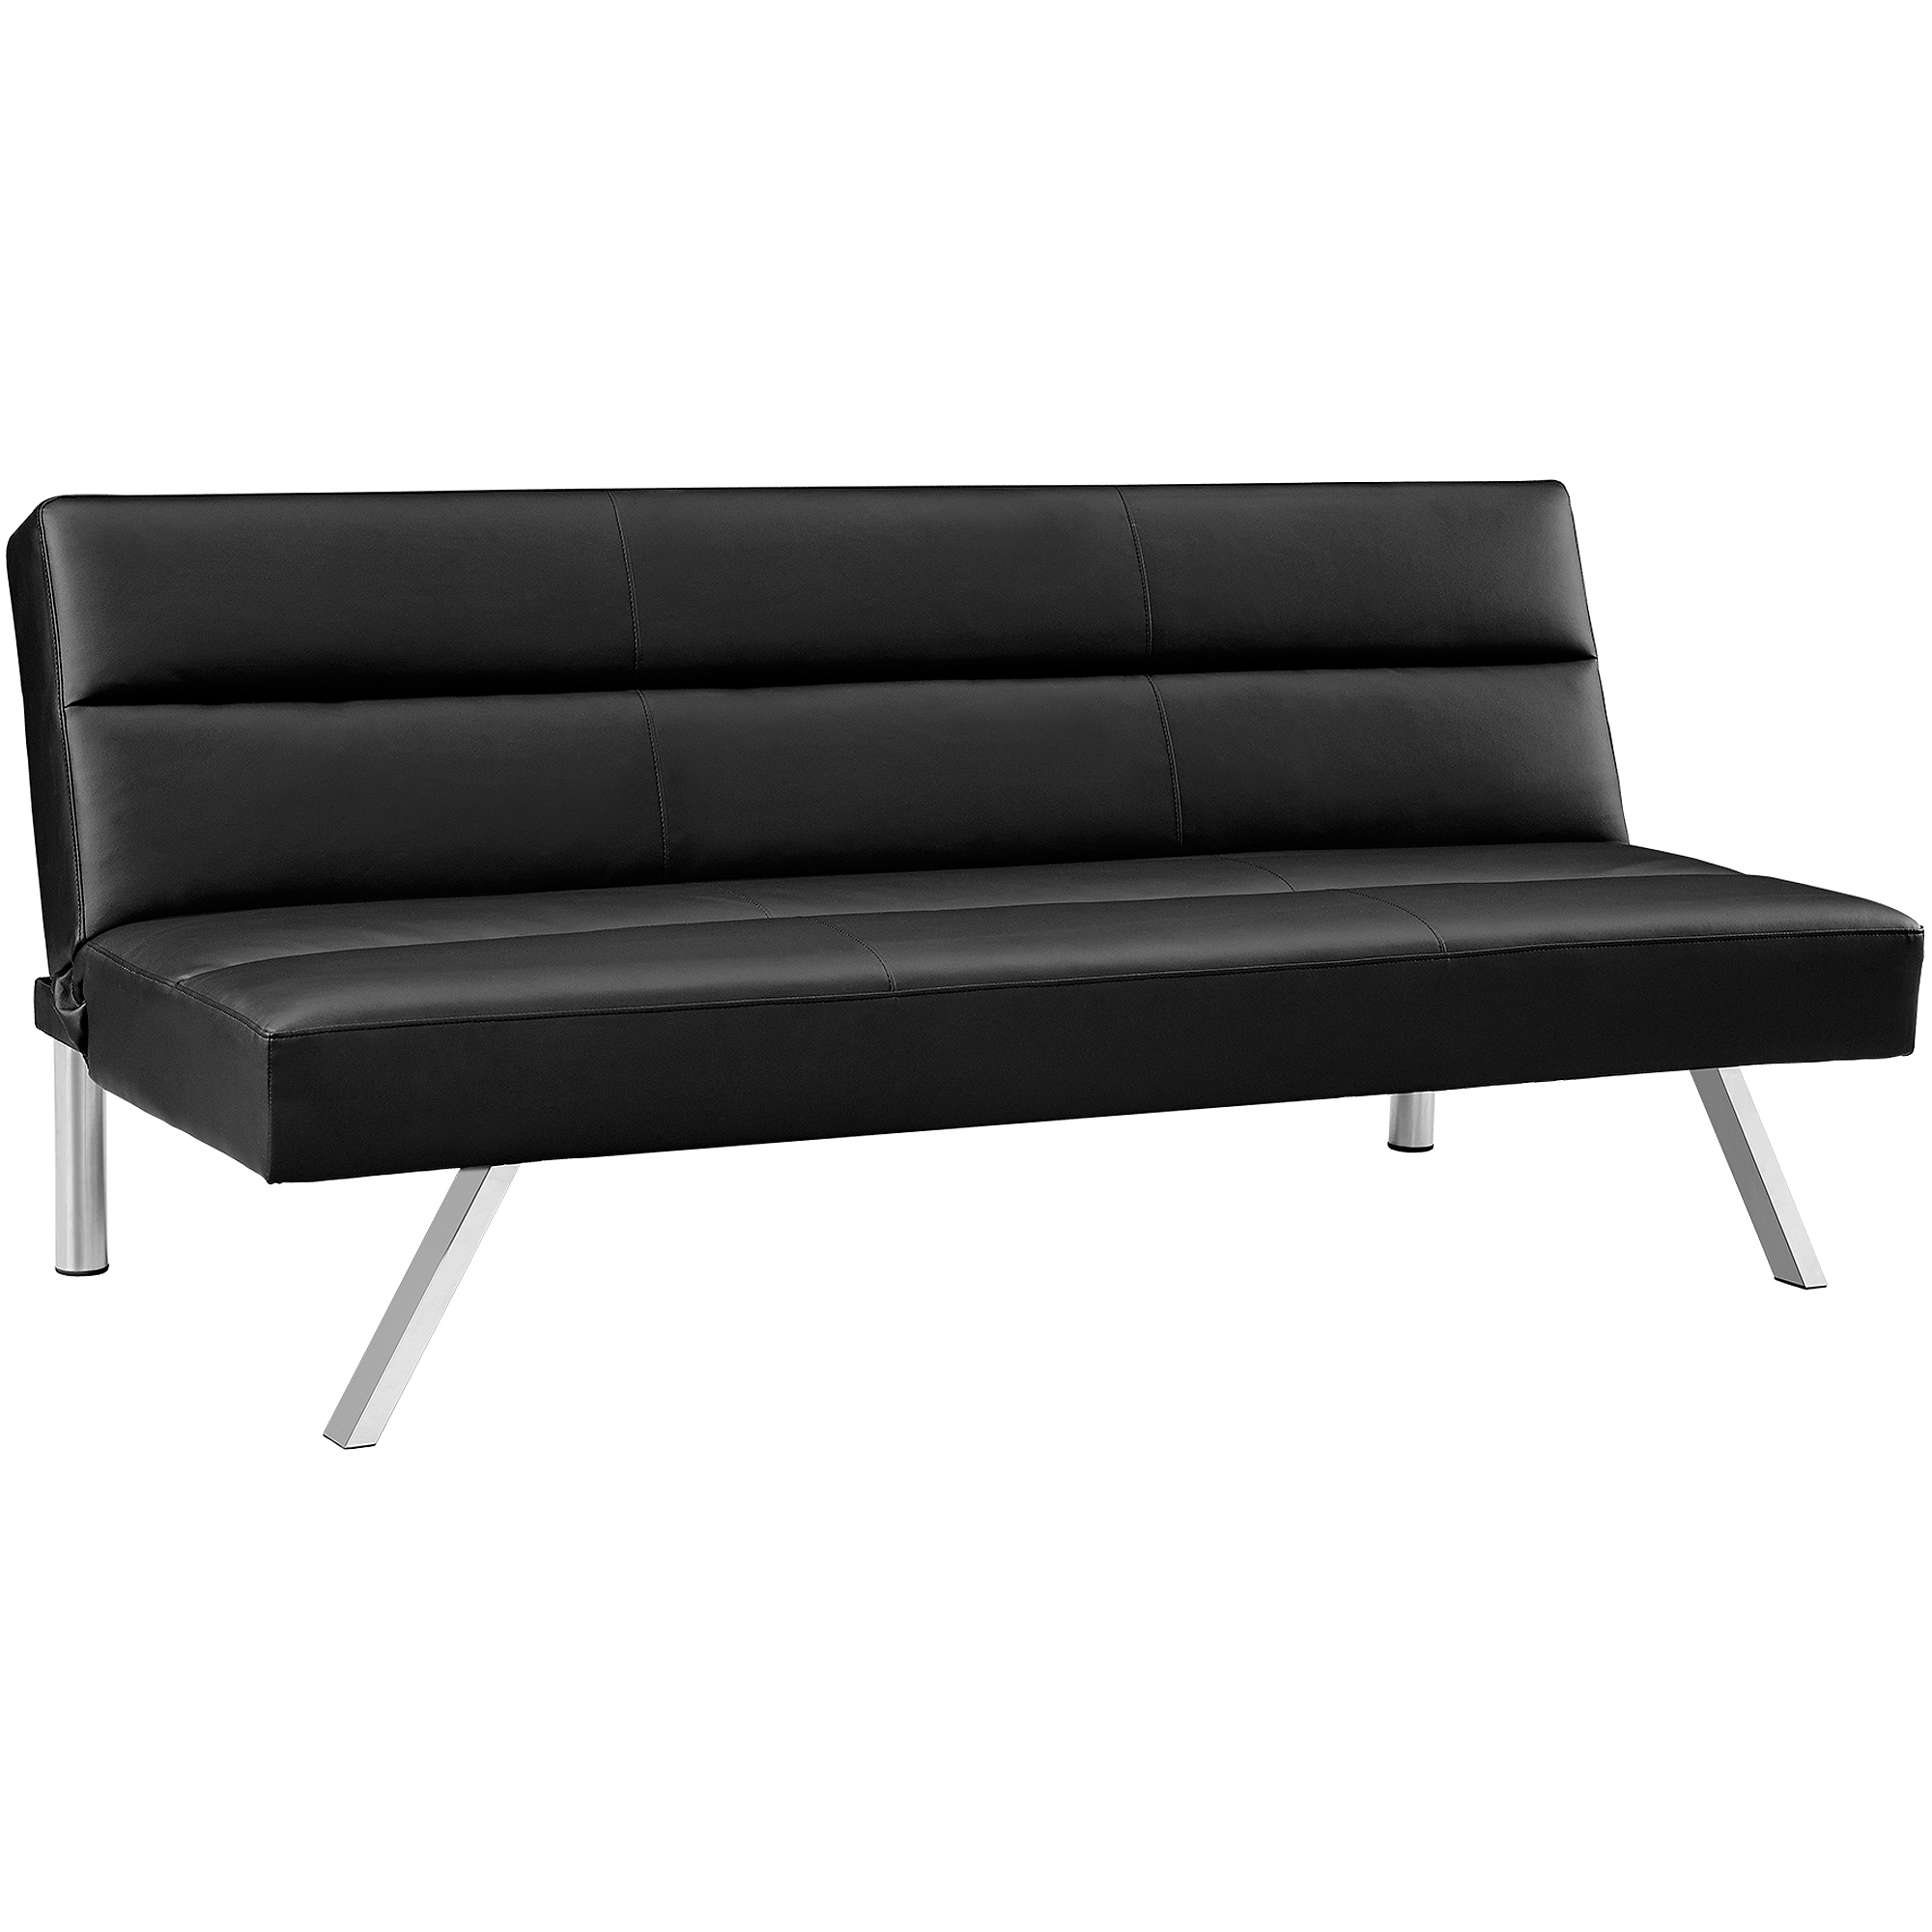 mainstays sofa sleeper with memory foam house beautiful leather sofas walmart black futon  home decor